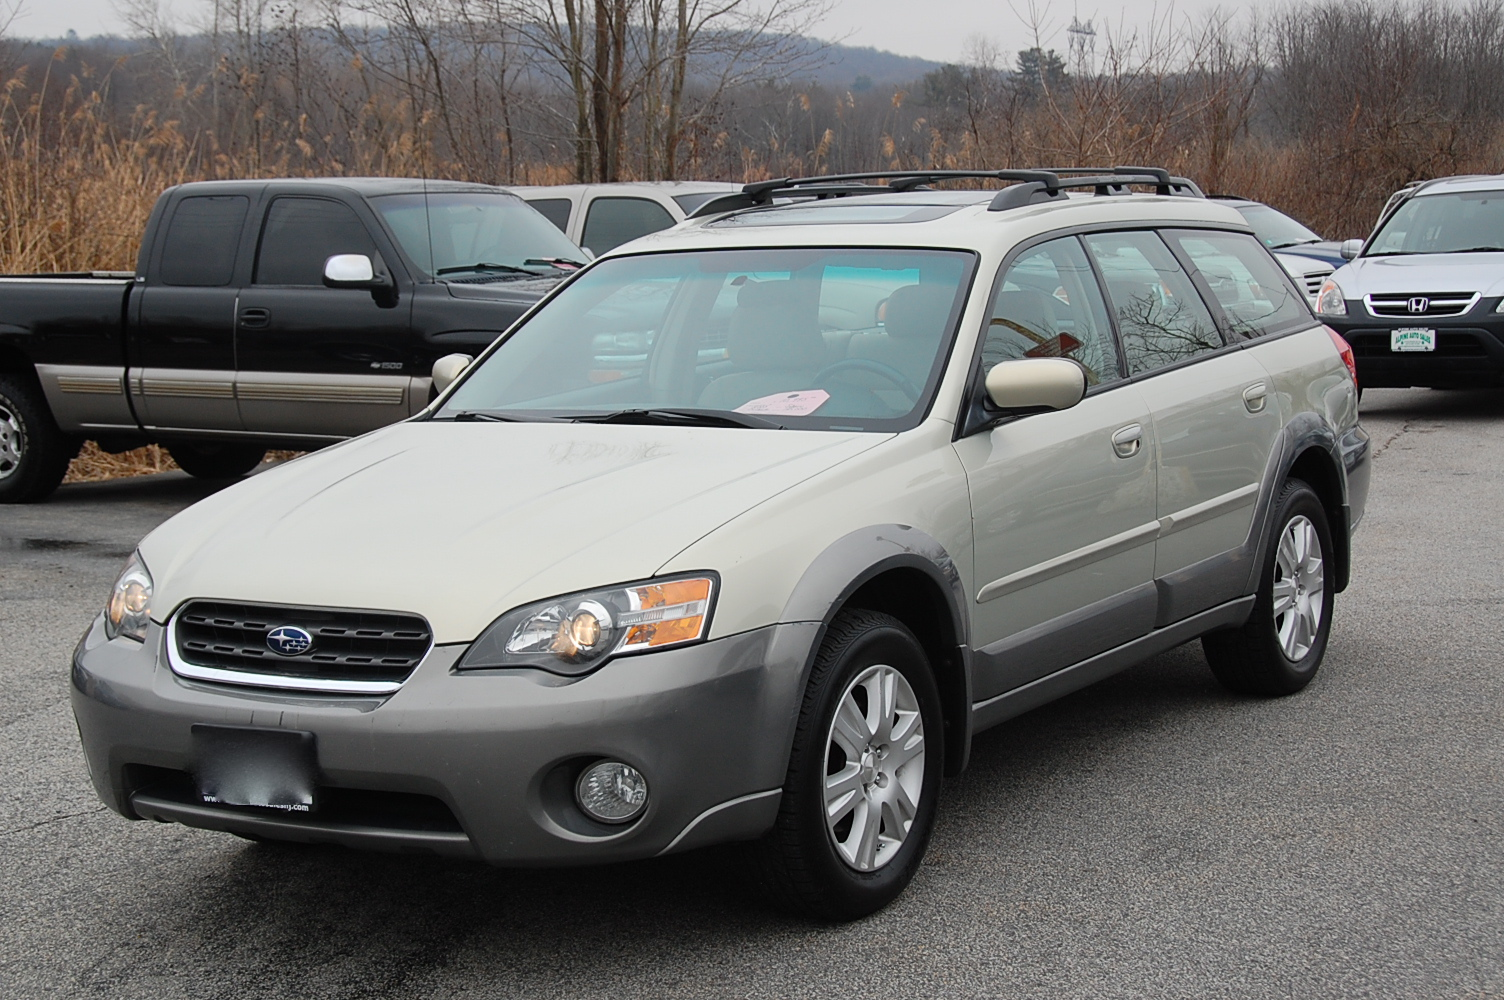 2005 subaru outback limited wagon in nj subaru outback subaru click image for larger version name dsc0904g views 9808 size 7030 vanachro Images